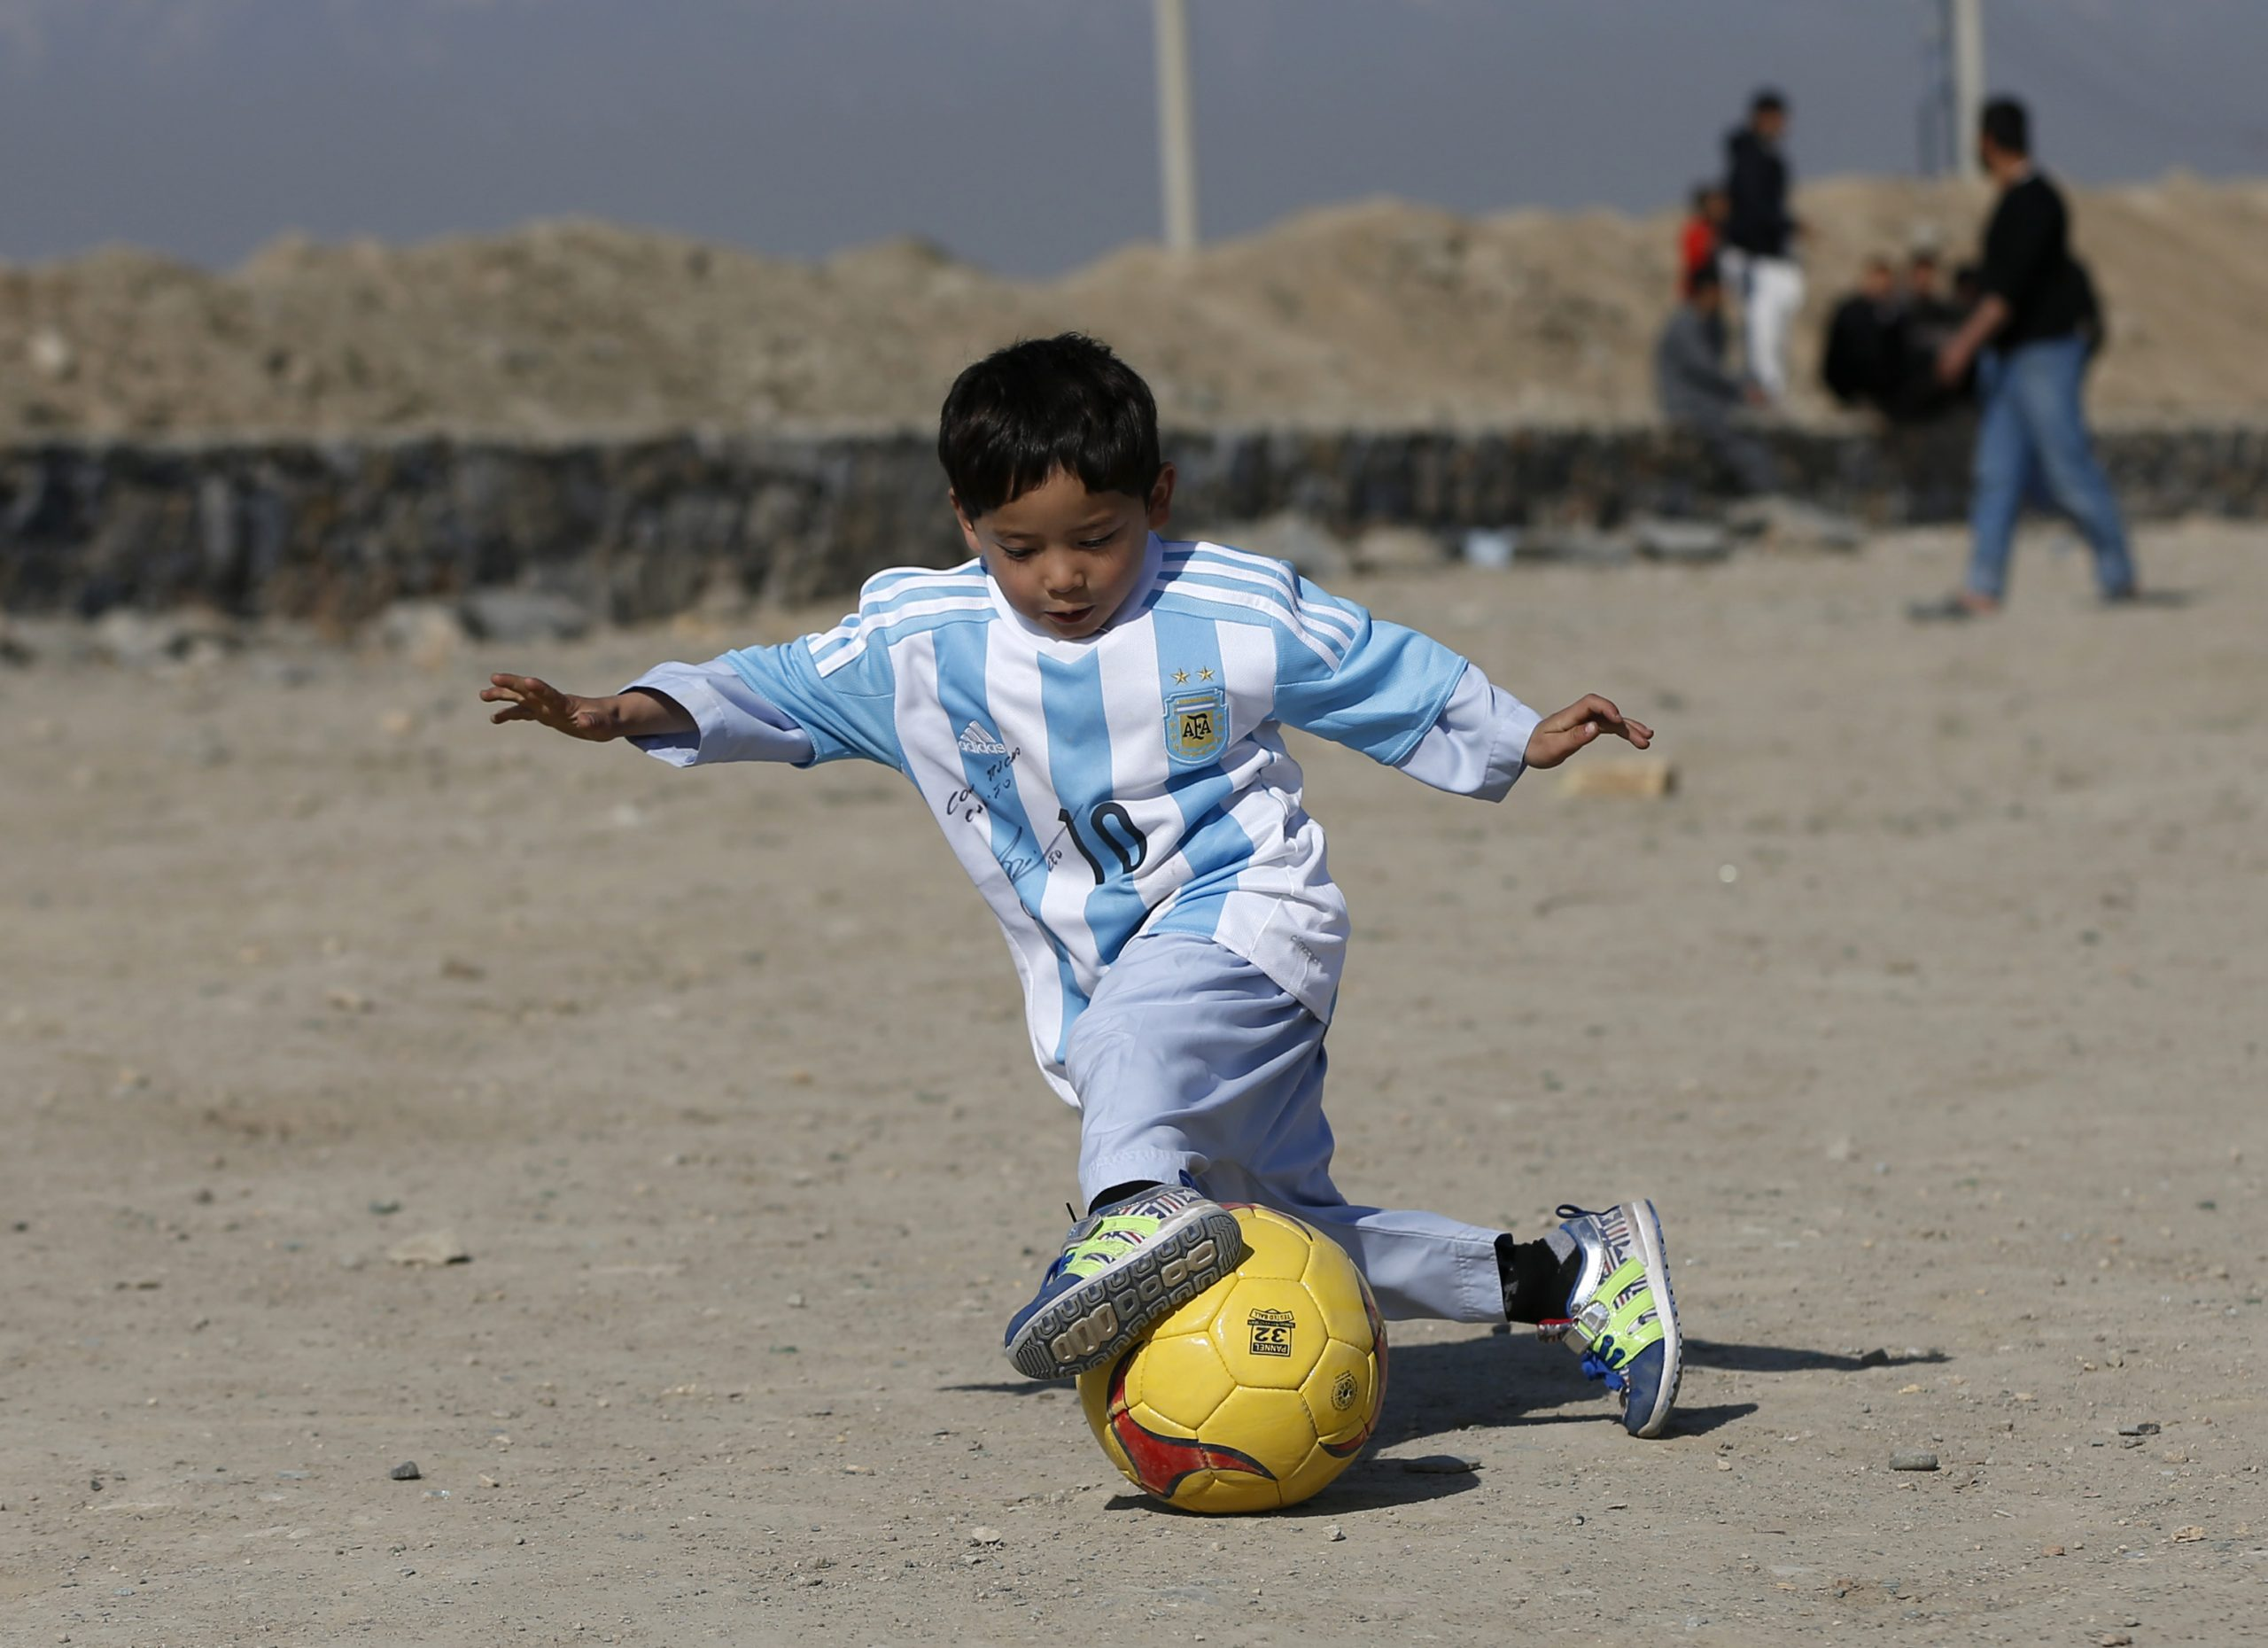 Five Year Old Ahmadi, An Afghan Messi Fan, Wears A Shirt Signed By Barcelona Star Messi, As He Plays Football At The Open Area In Kabul